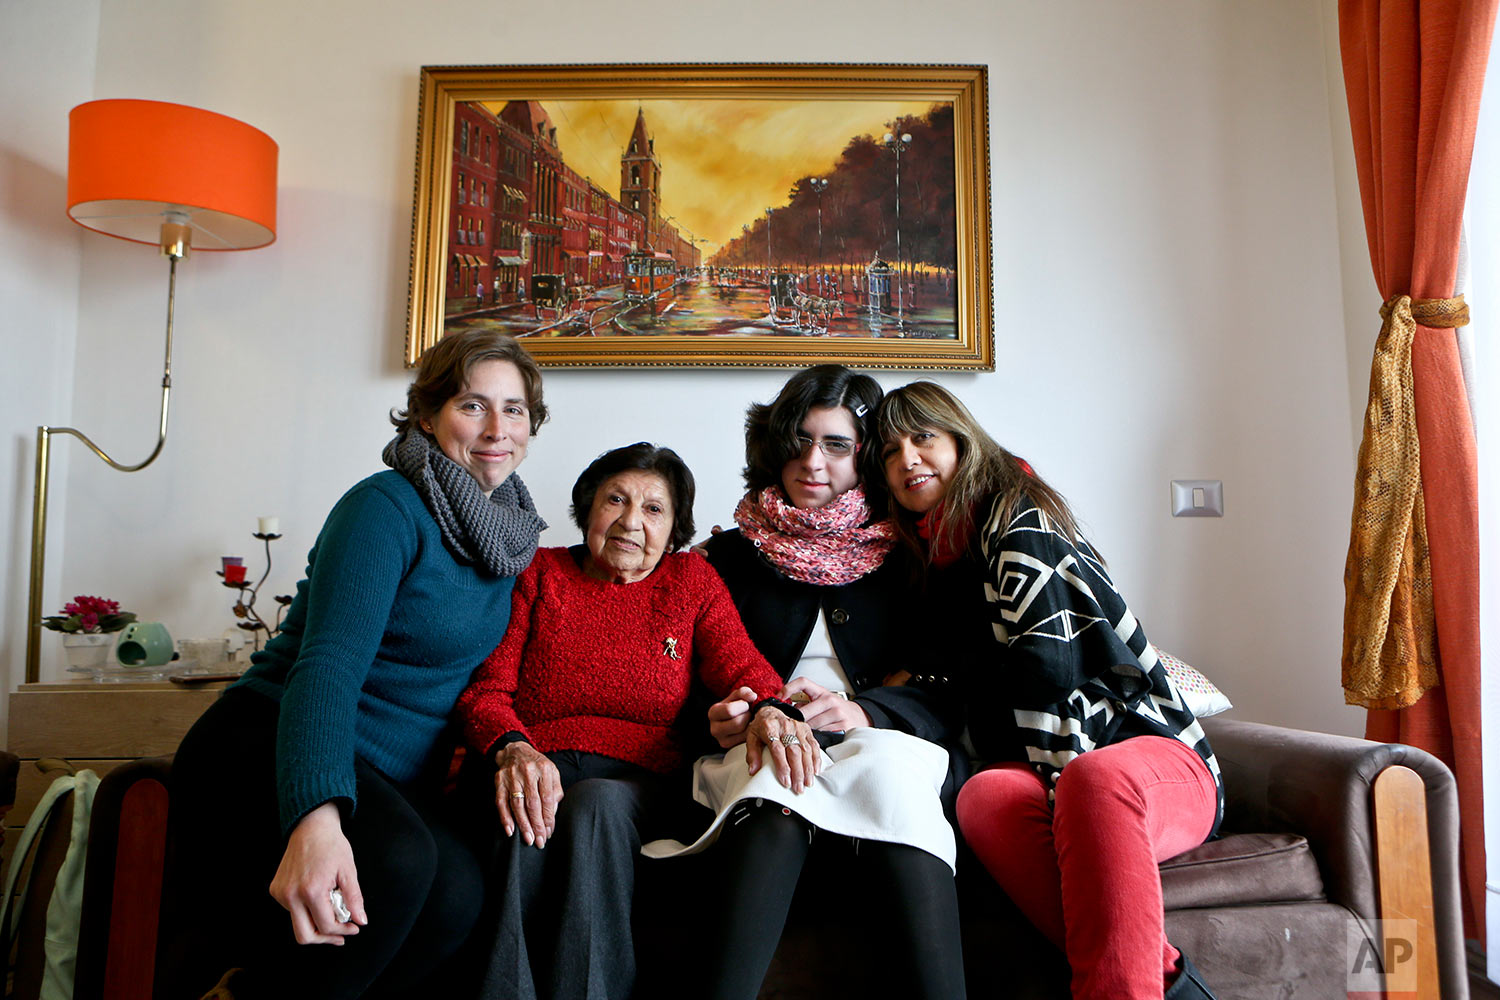 In this June 19, 2017 photo, transgender girl Angela, second from right, poses for a portrait with her mother Ximena Maturana, far left, grandmother, far right, and great-grandmother, at her home in Santiago, Chile. Angela, who was born male, said she still struggles to come to terms with her identity a year after her transition. (AP Photo/Esteban Felix)